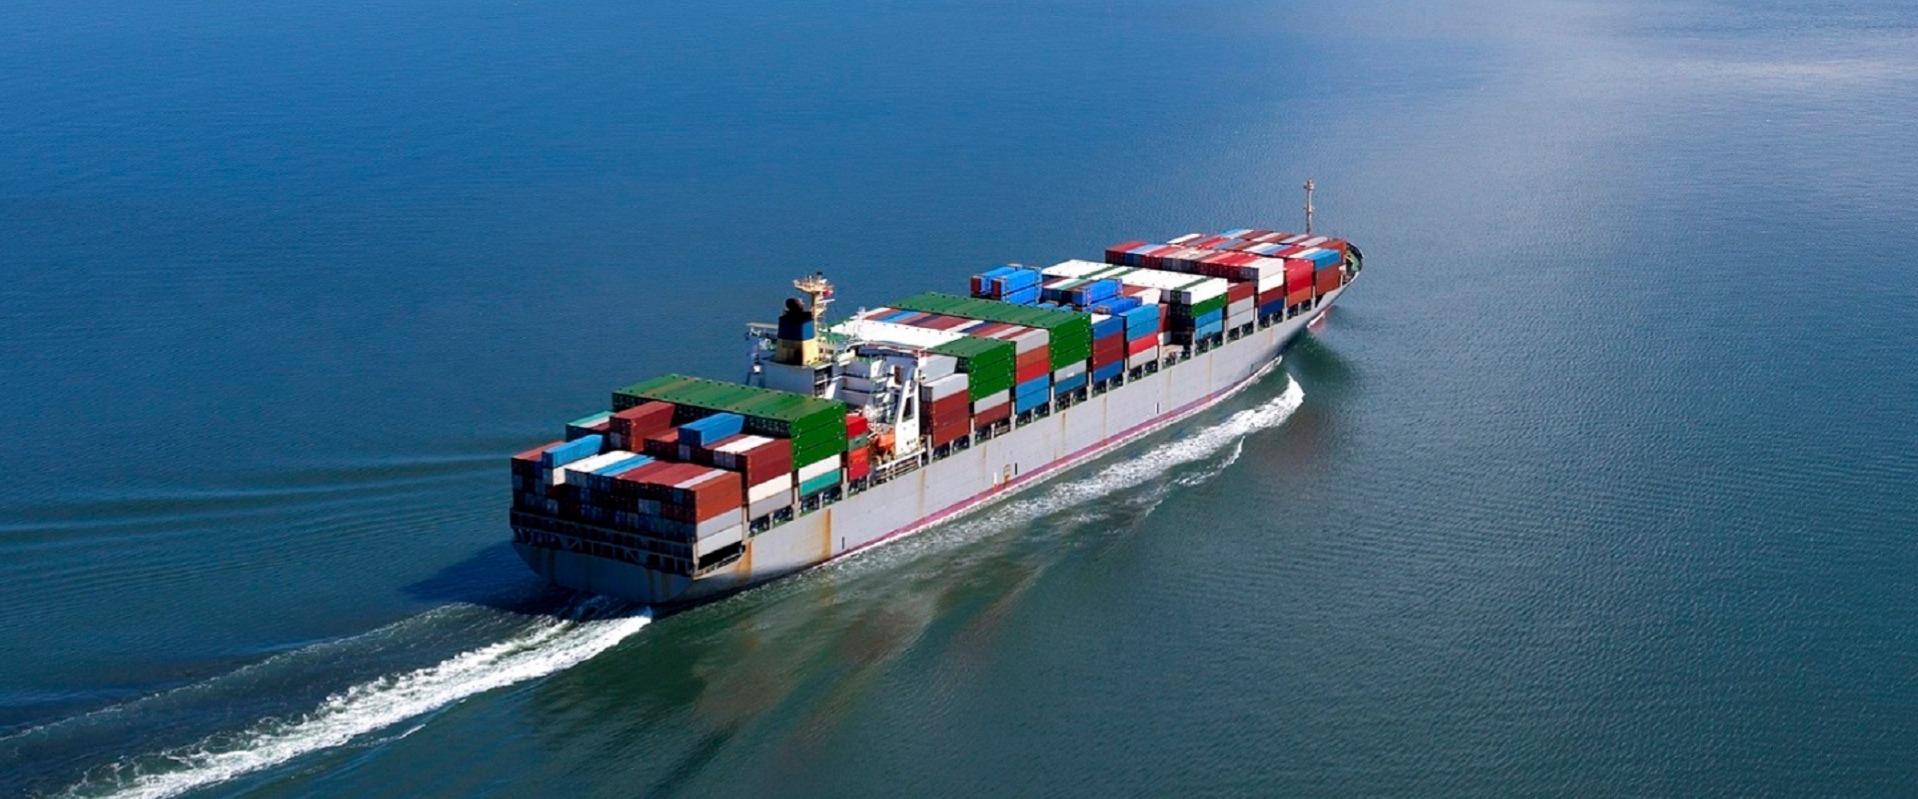 Sailing towards global efficiency and competitiveness